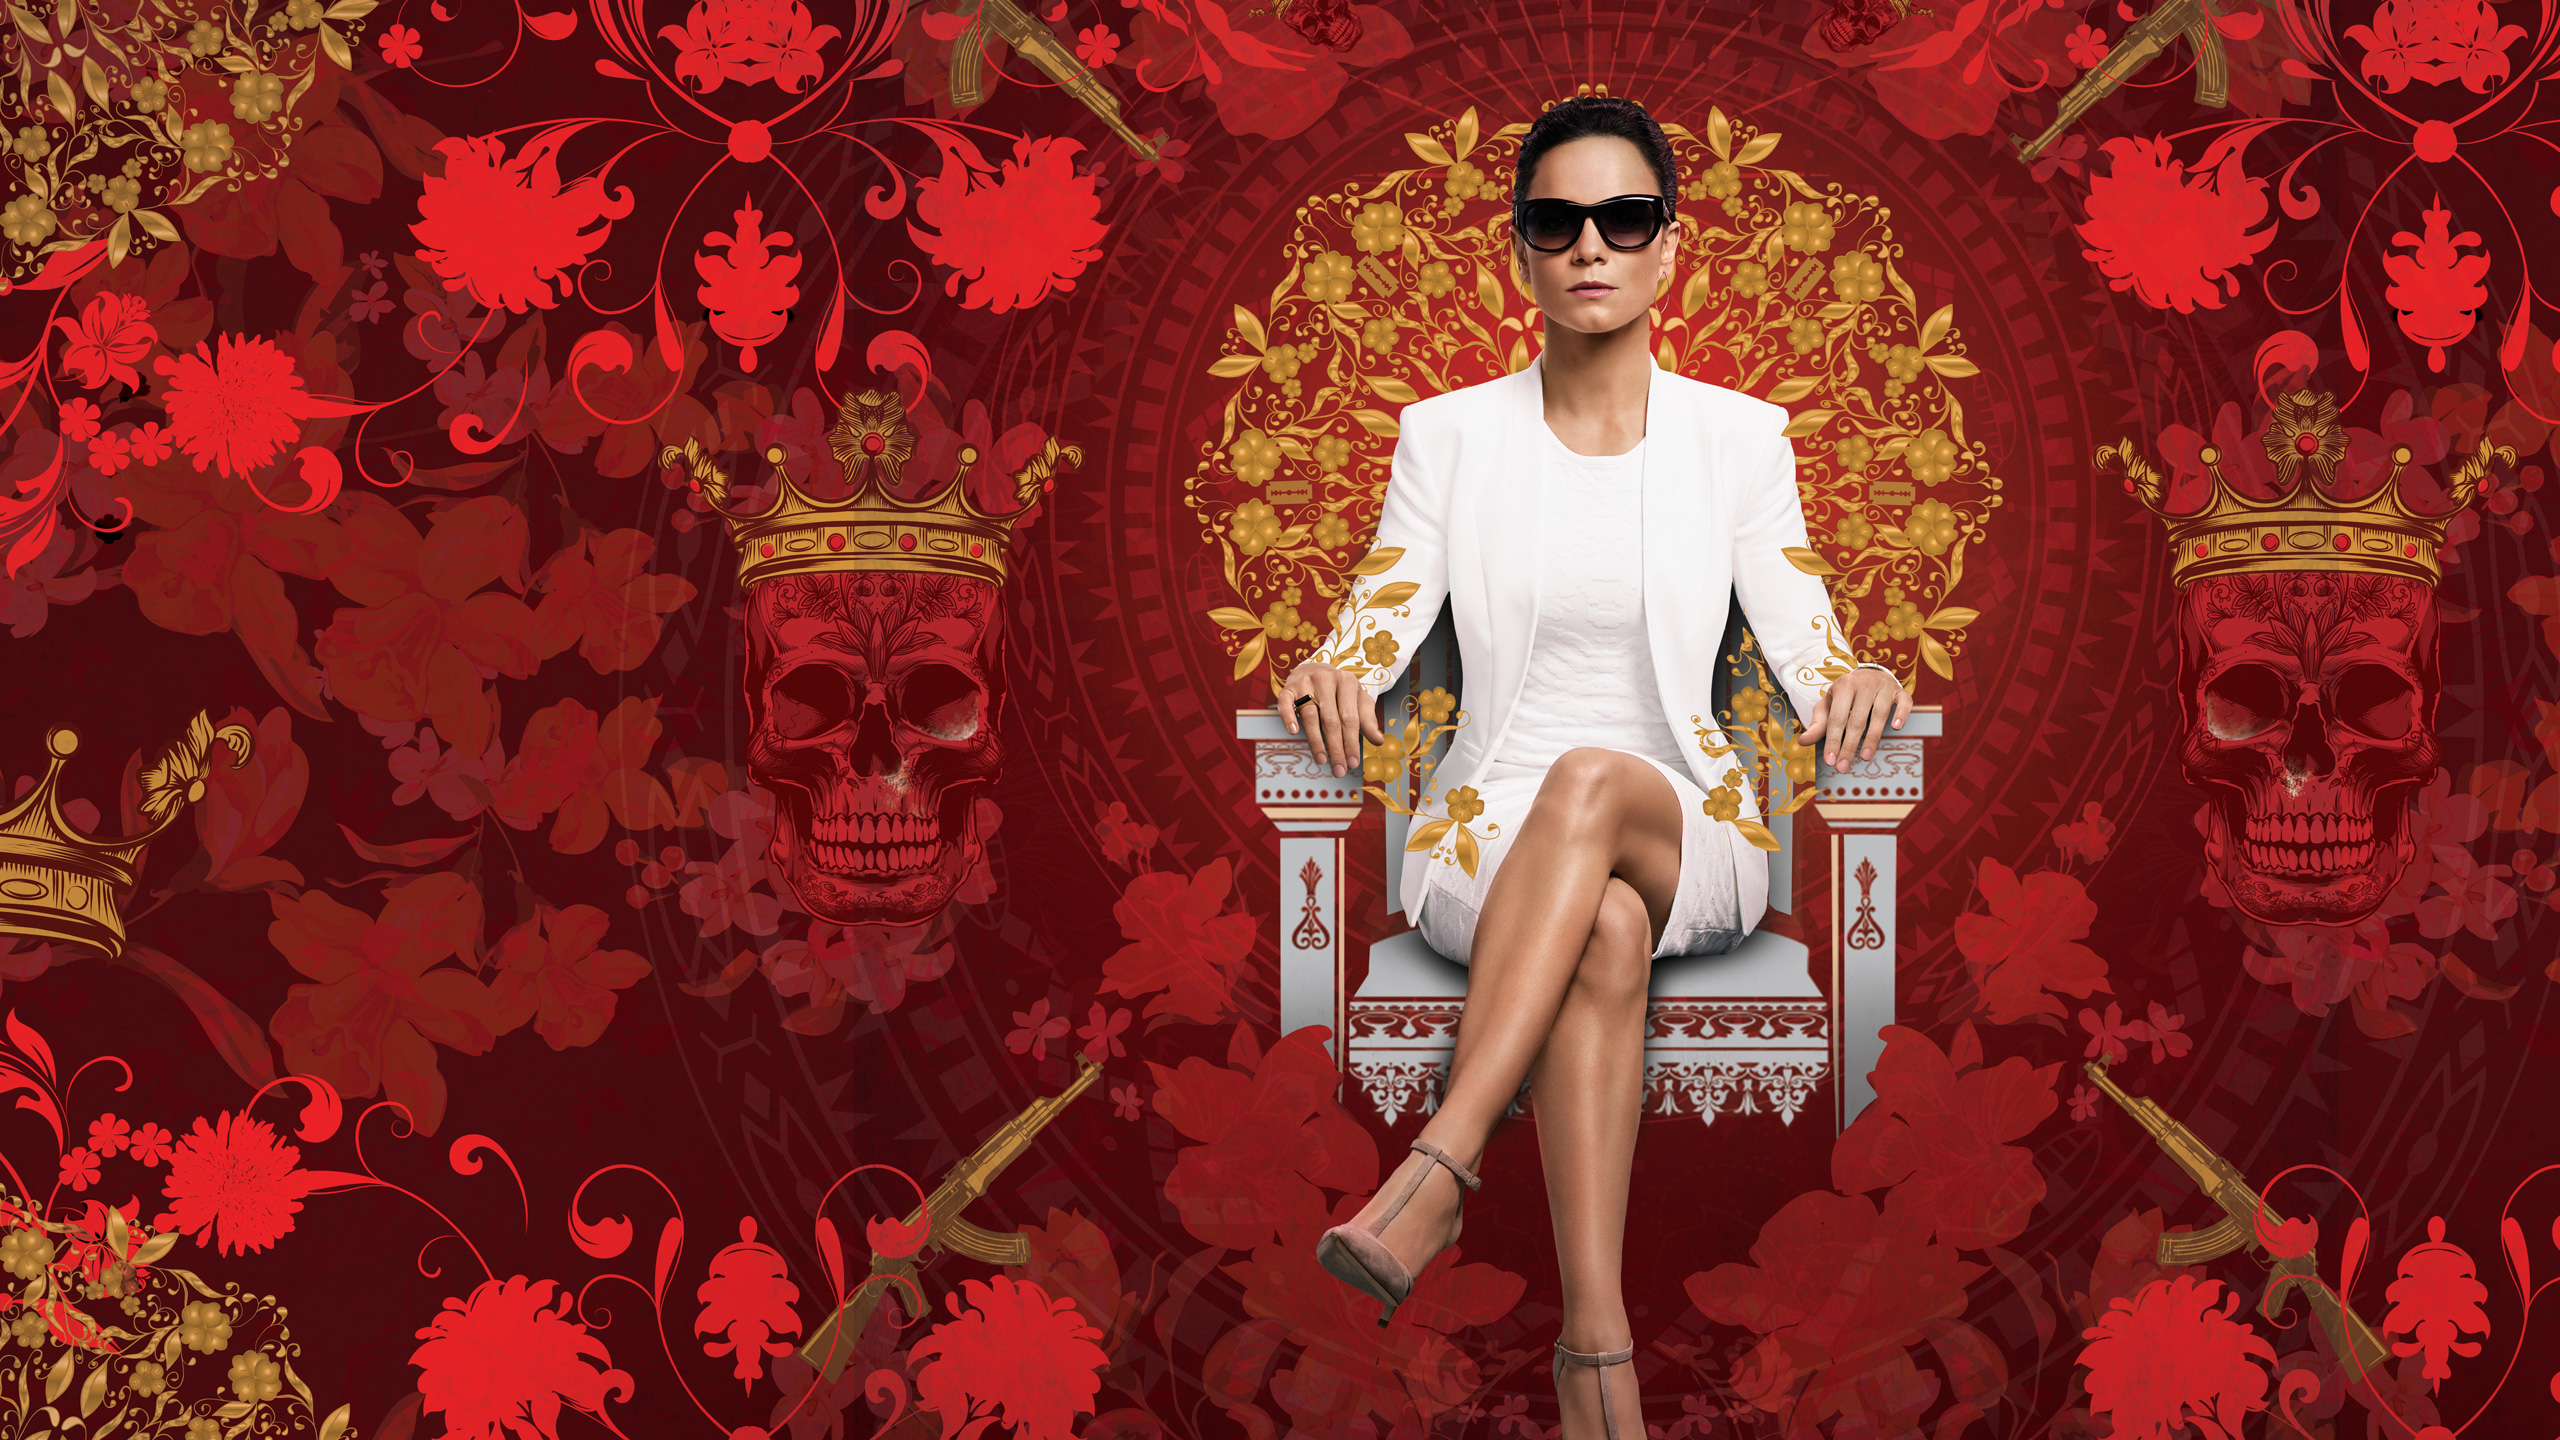 Queen Series the Wallpapers South HD of TV